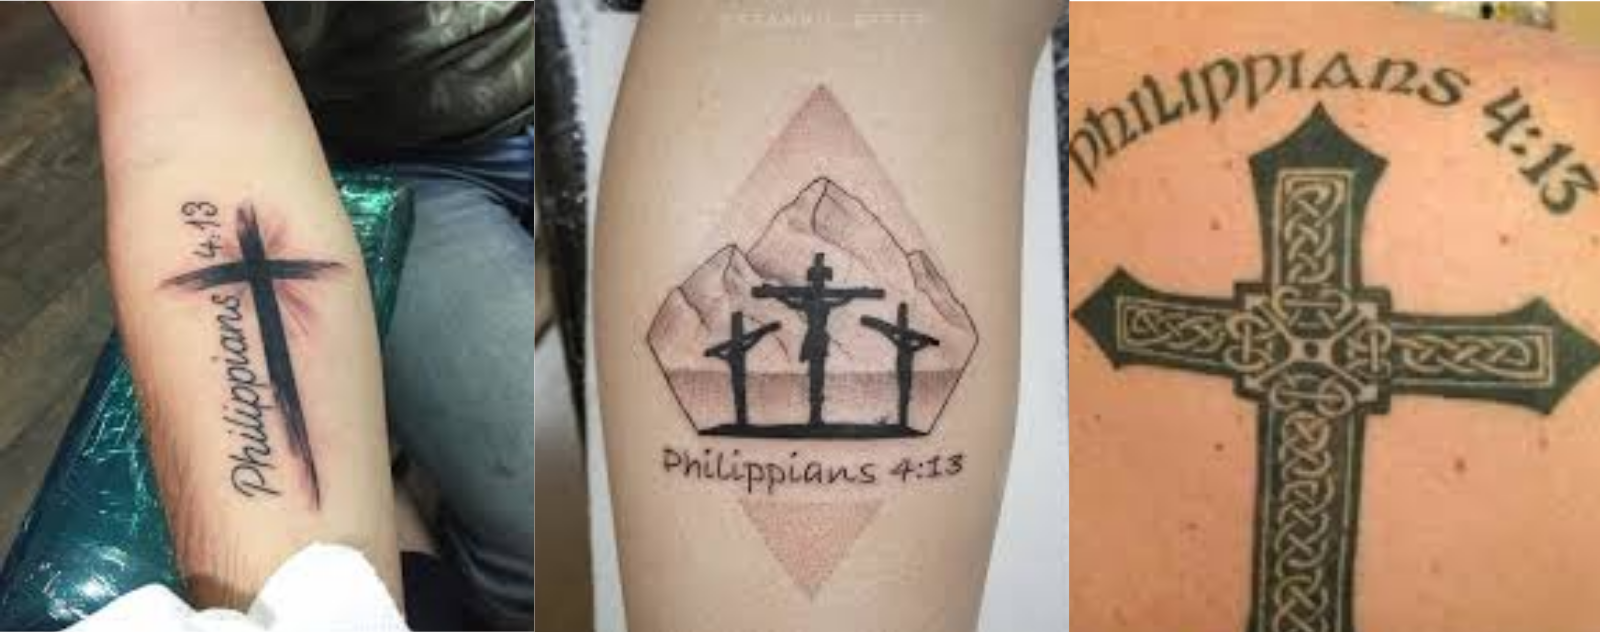 philippians-4-13-tattoo-with-cross-9